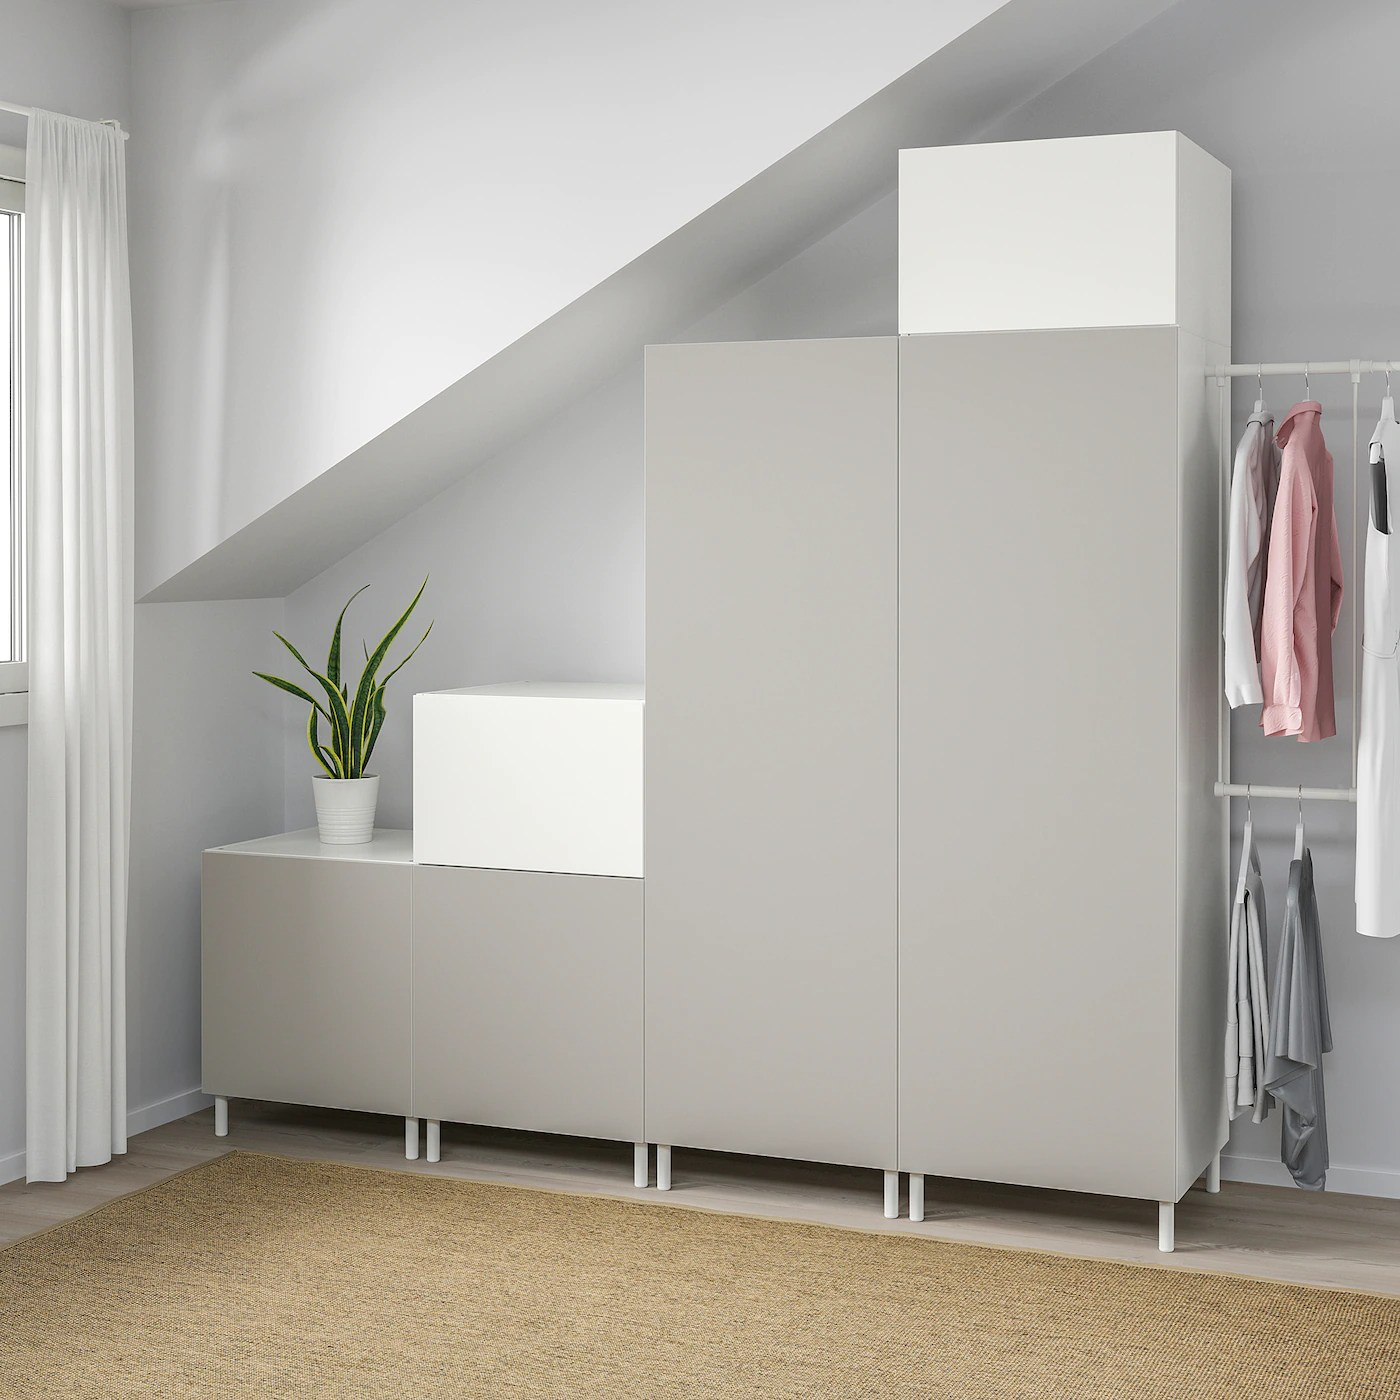 Platsa Wardrobe White Fonnes Skatval Light Grey Ikea